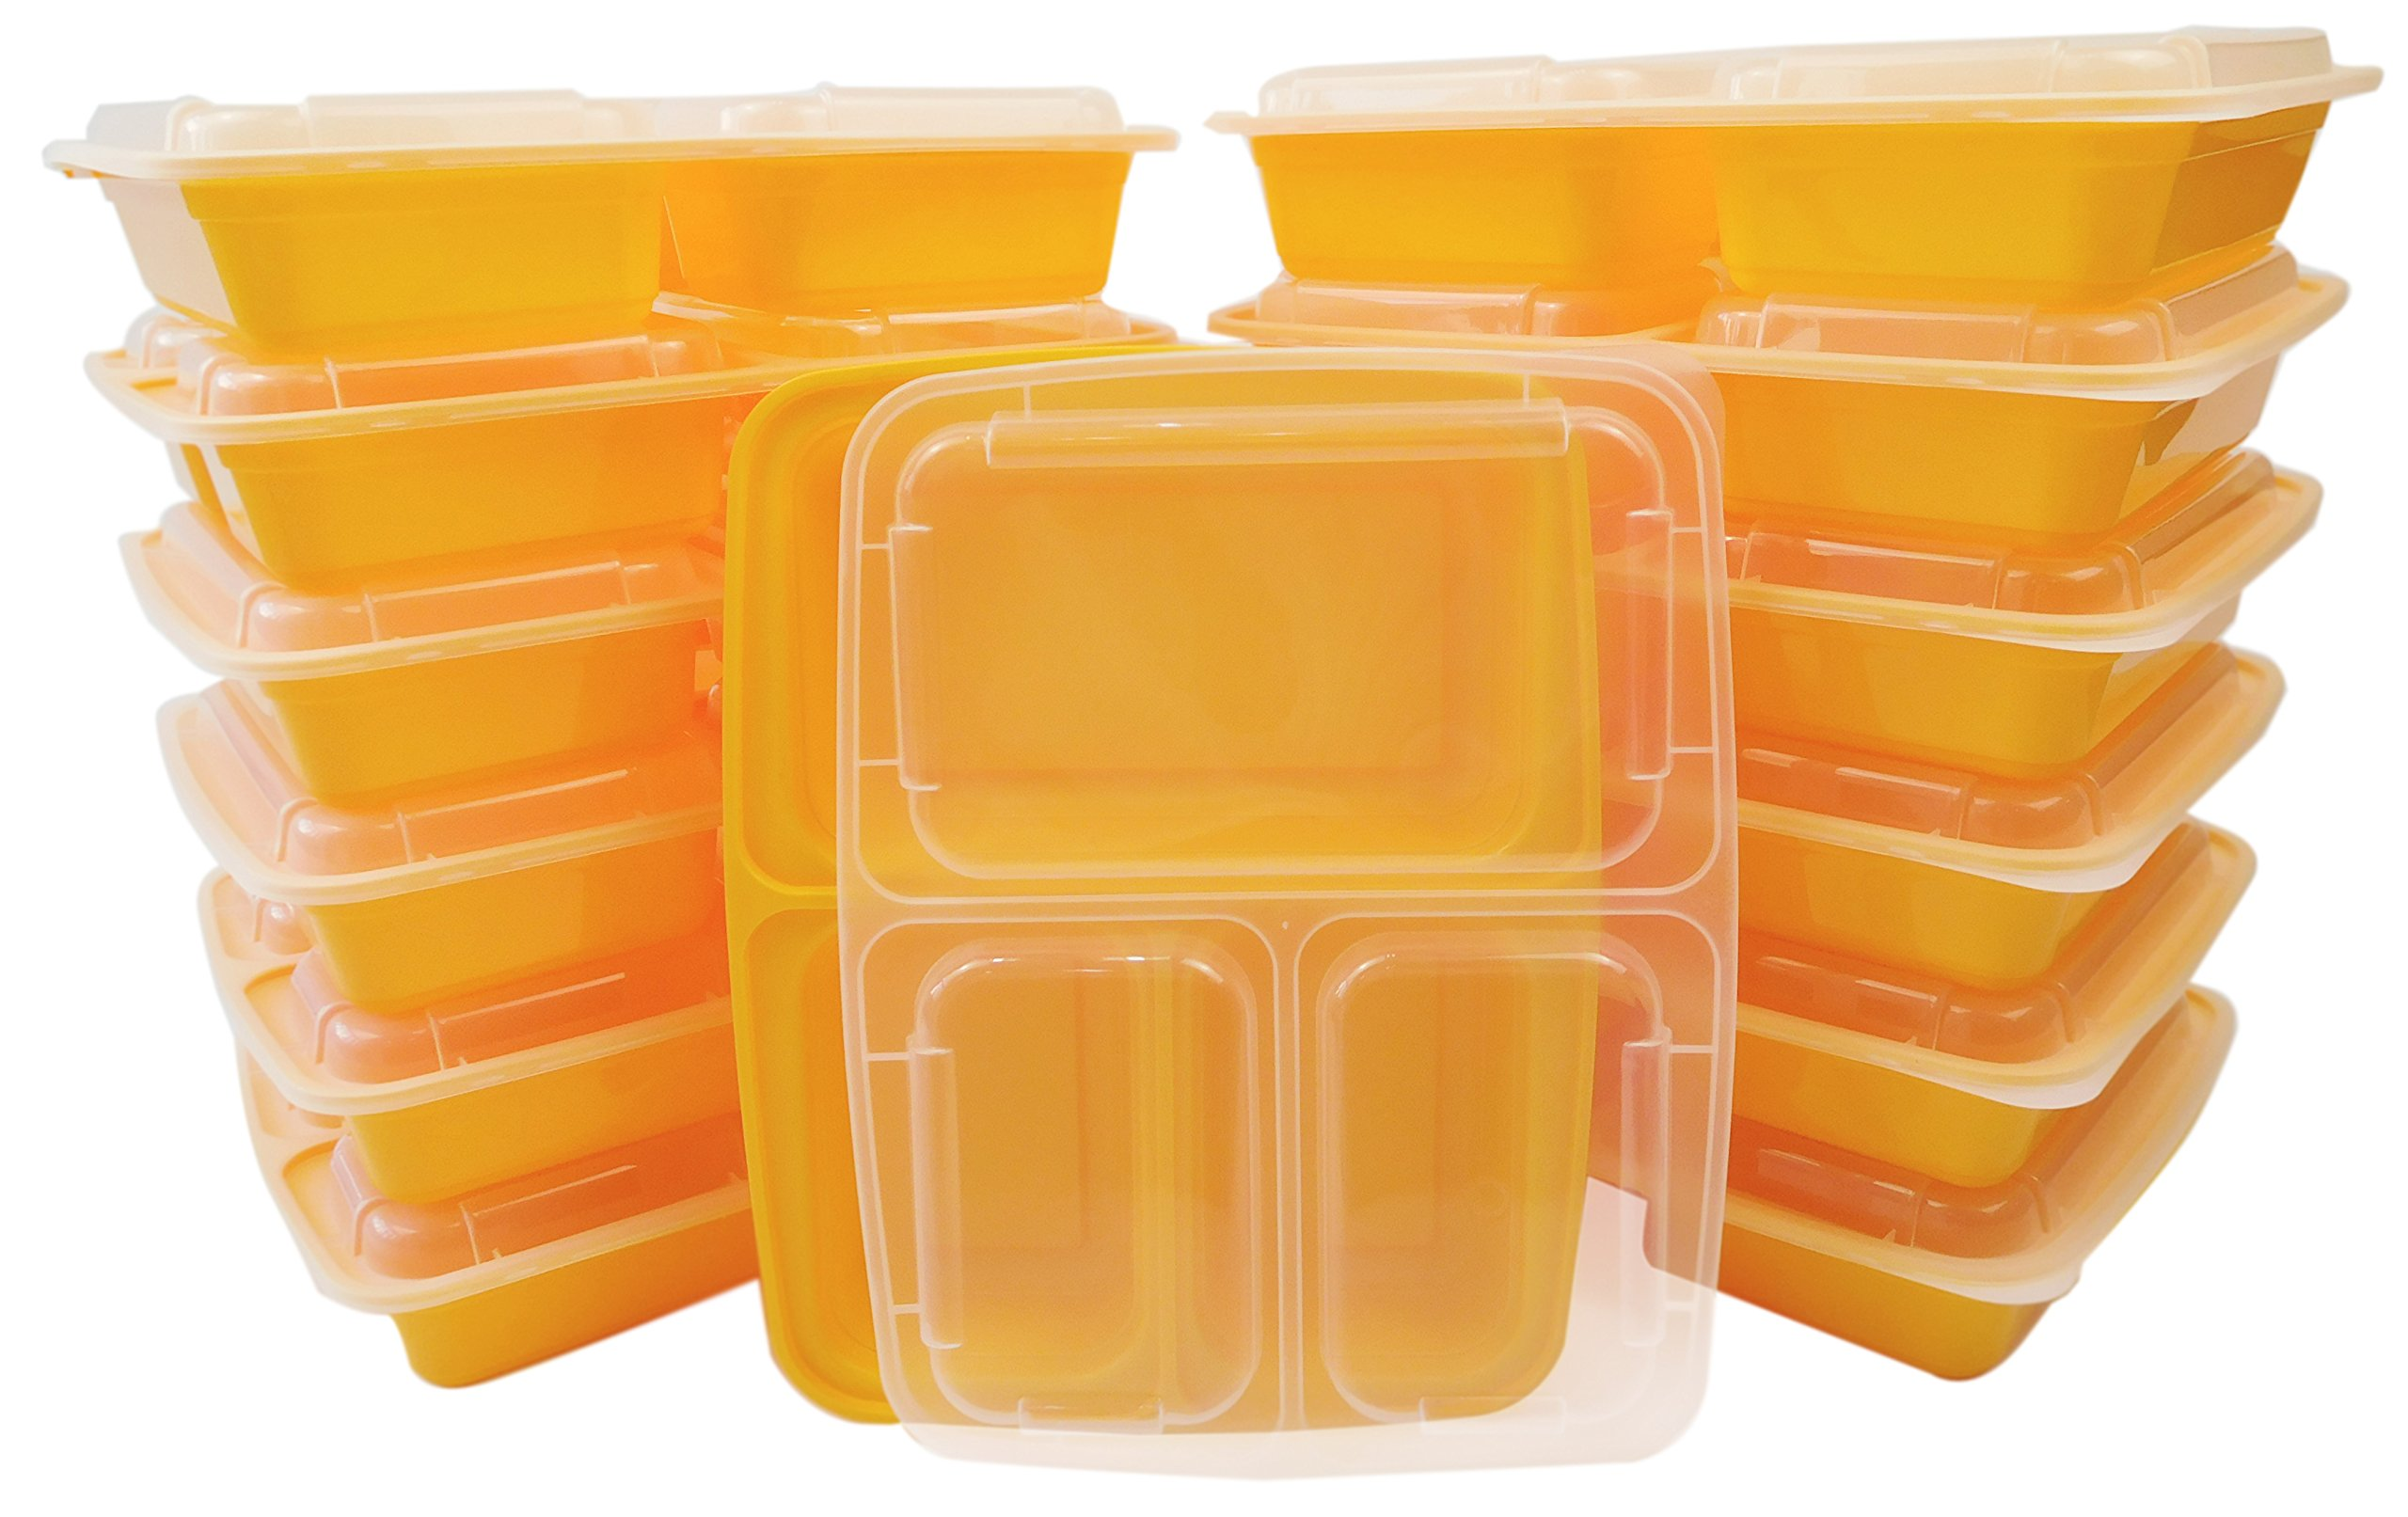 Table To Go 240-Pack Bento Lunch Boxes with Lids (3 Compartment/ 36 oz) | Microwaveable, Dishwasher & Freezer Safe Meal Prep Containers | Reusable Dish Set for Prepping(Yellow) by Table To Go